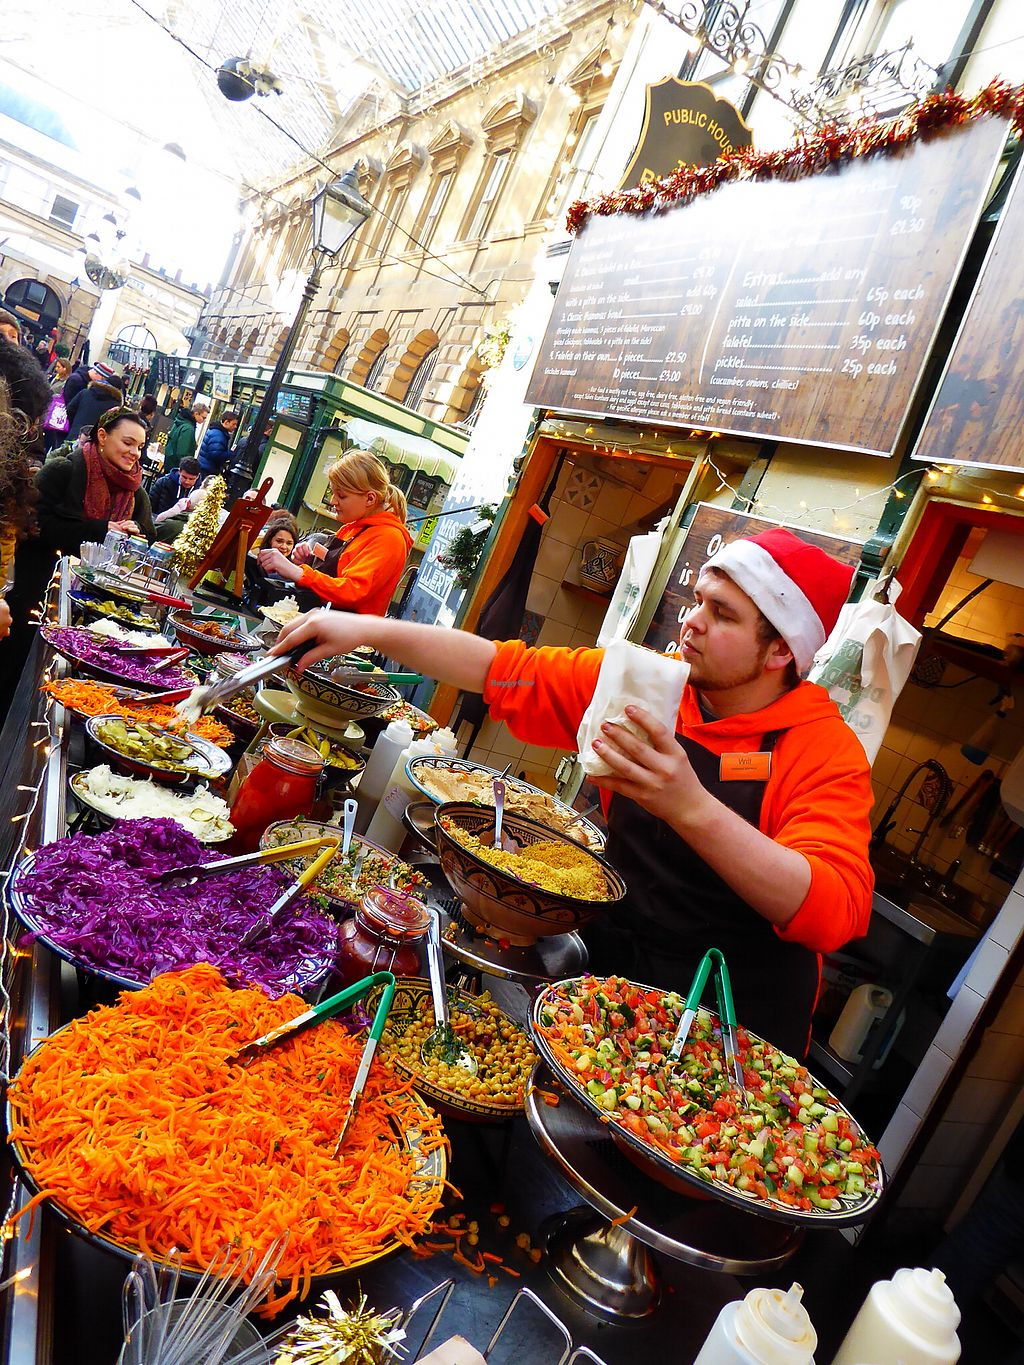 """Photo of Eat a Pitta - St Nicholas Market  by <a href=""""/members/profile/FranMcgarryArtist"""">FranMcgarryArtist</a> <br/>Wonderful Colourful Food <br/> January 22, 2018  - <a href='/contact/abuse/image/32313/349855'>Report</a>"""